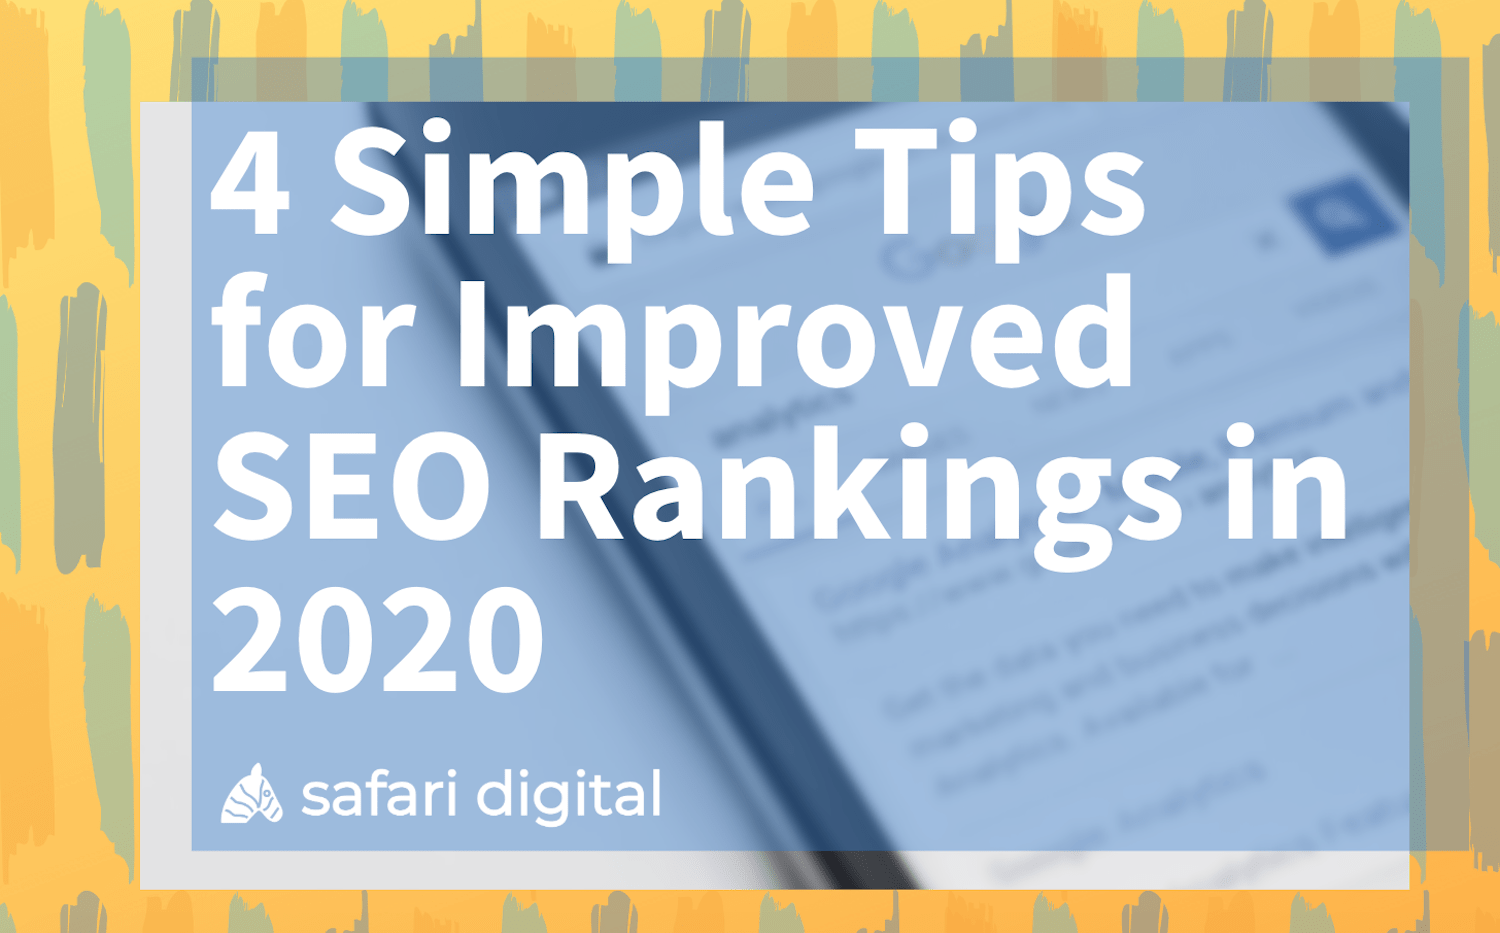 4 simple tips for improved SEO rankings in 2020 banner image large